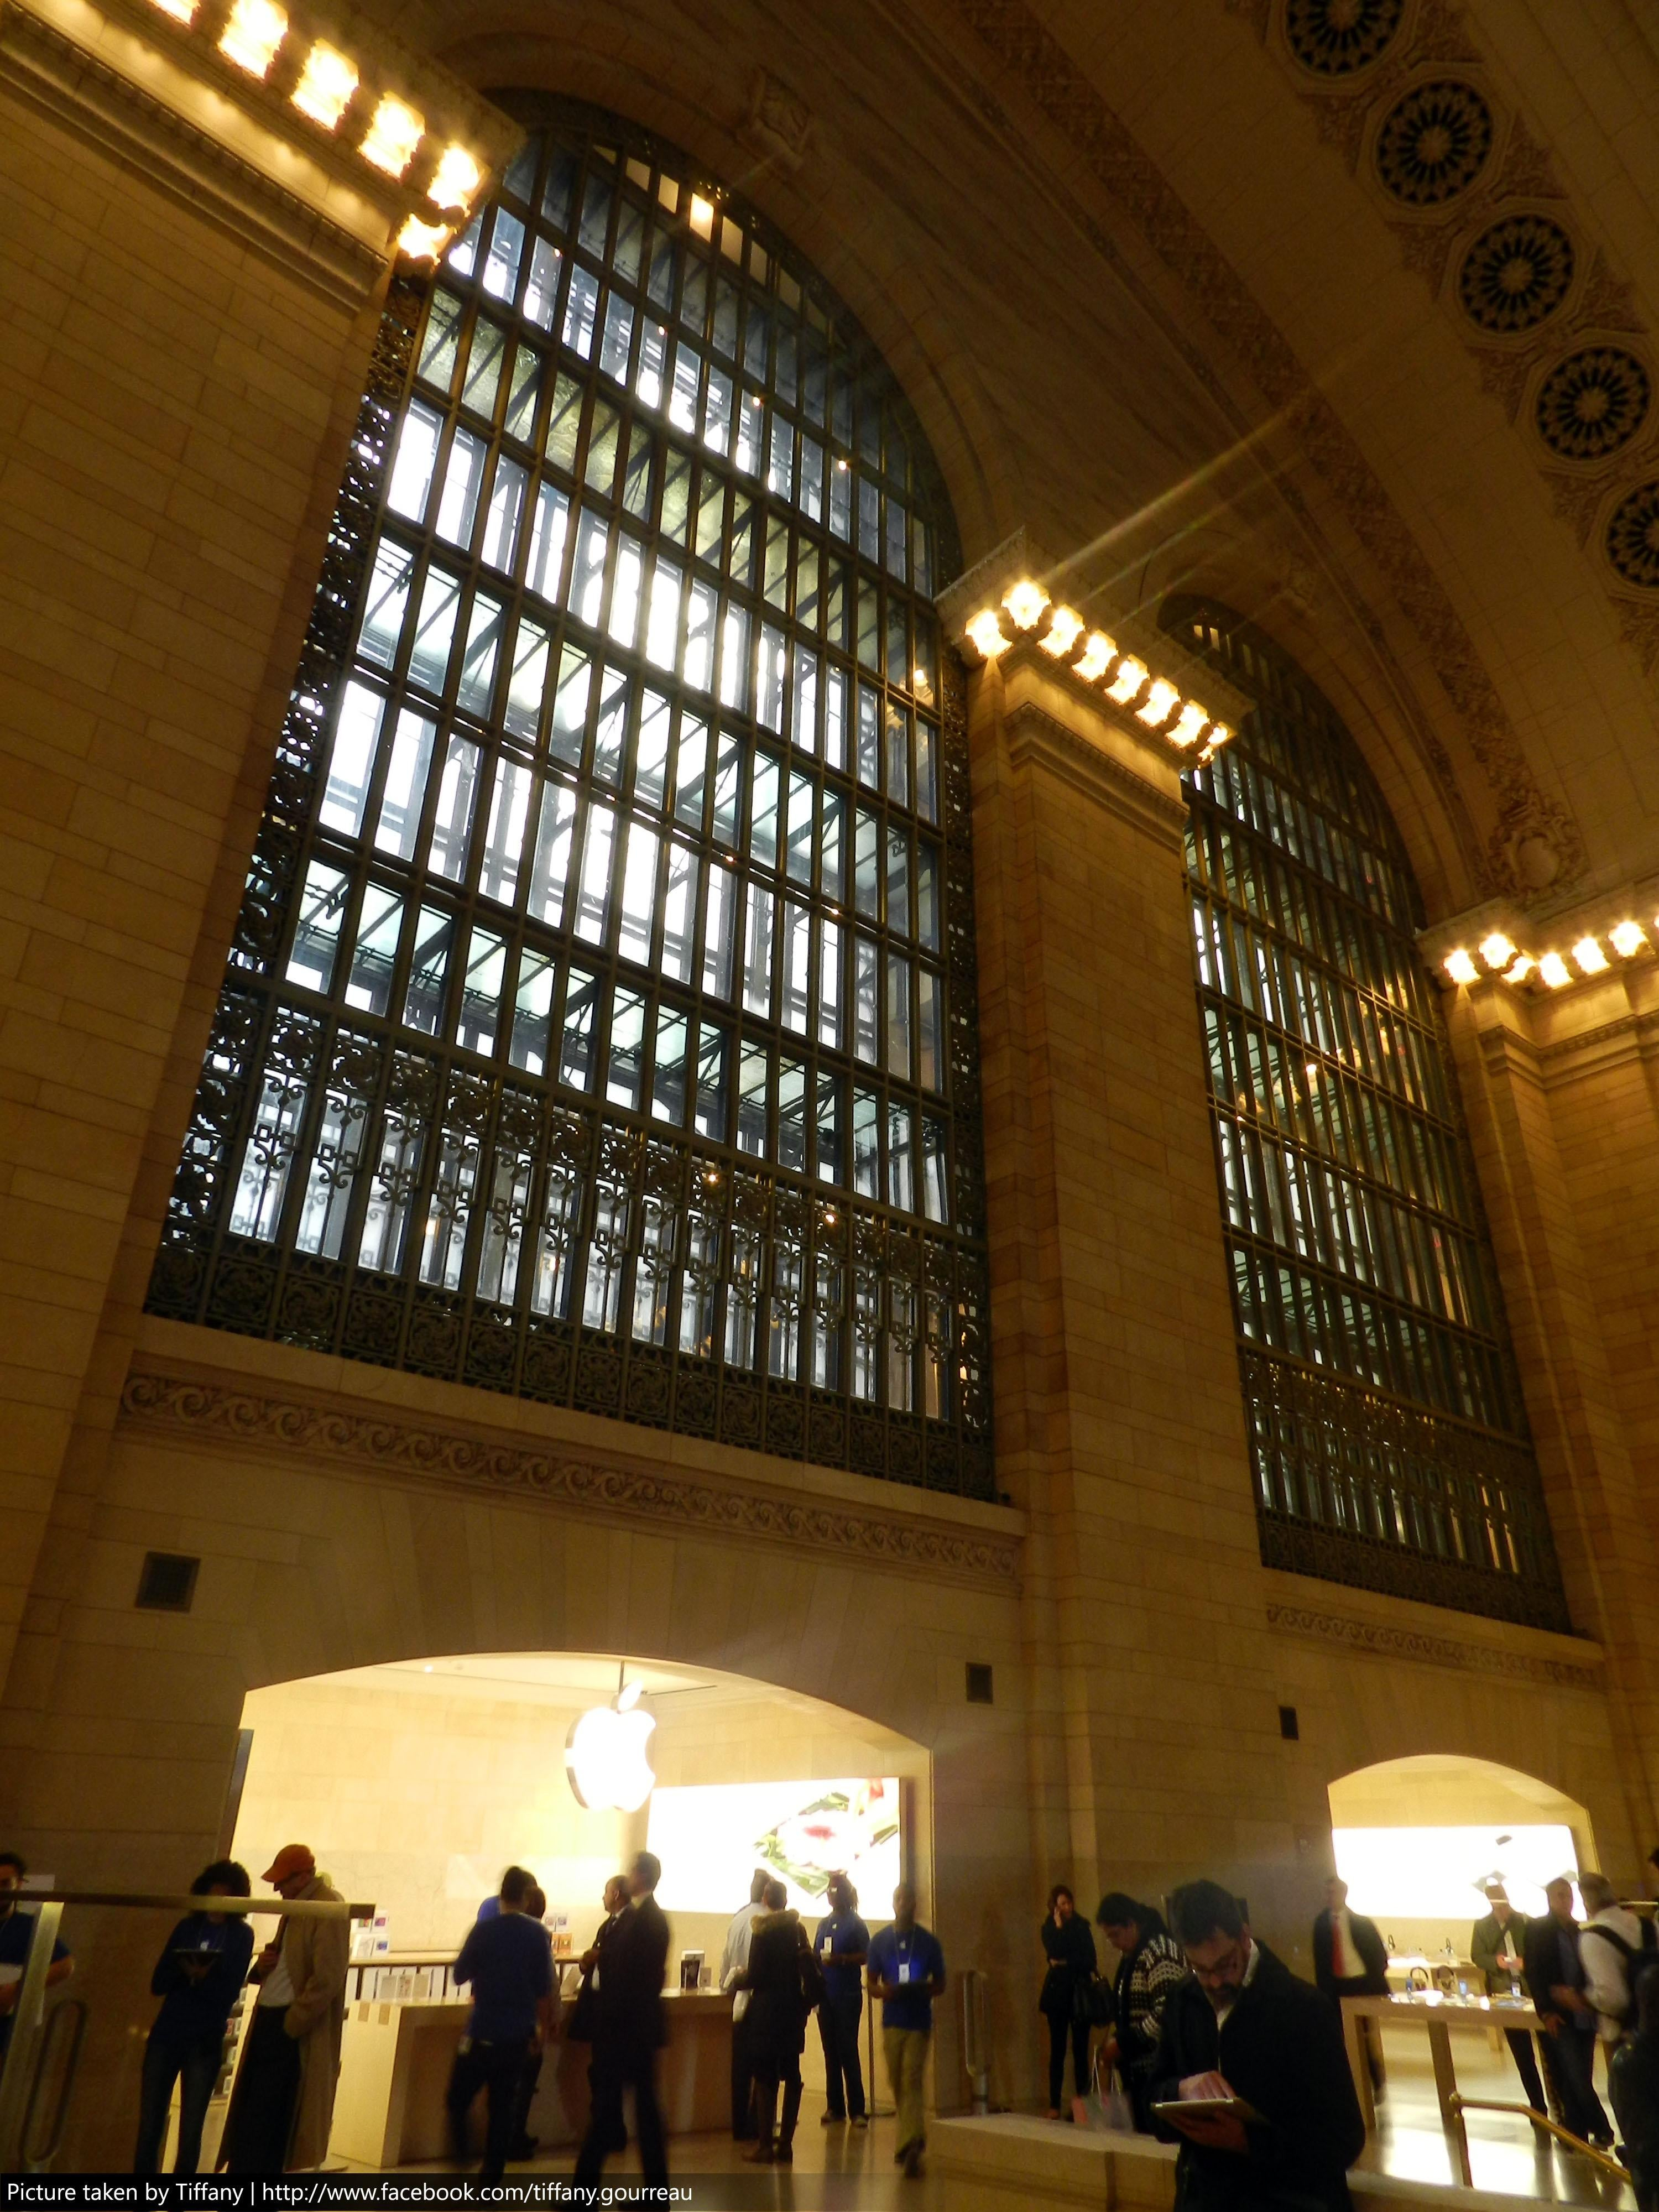 Photos of Apple Store in Grand Central Terminal - Images